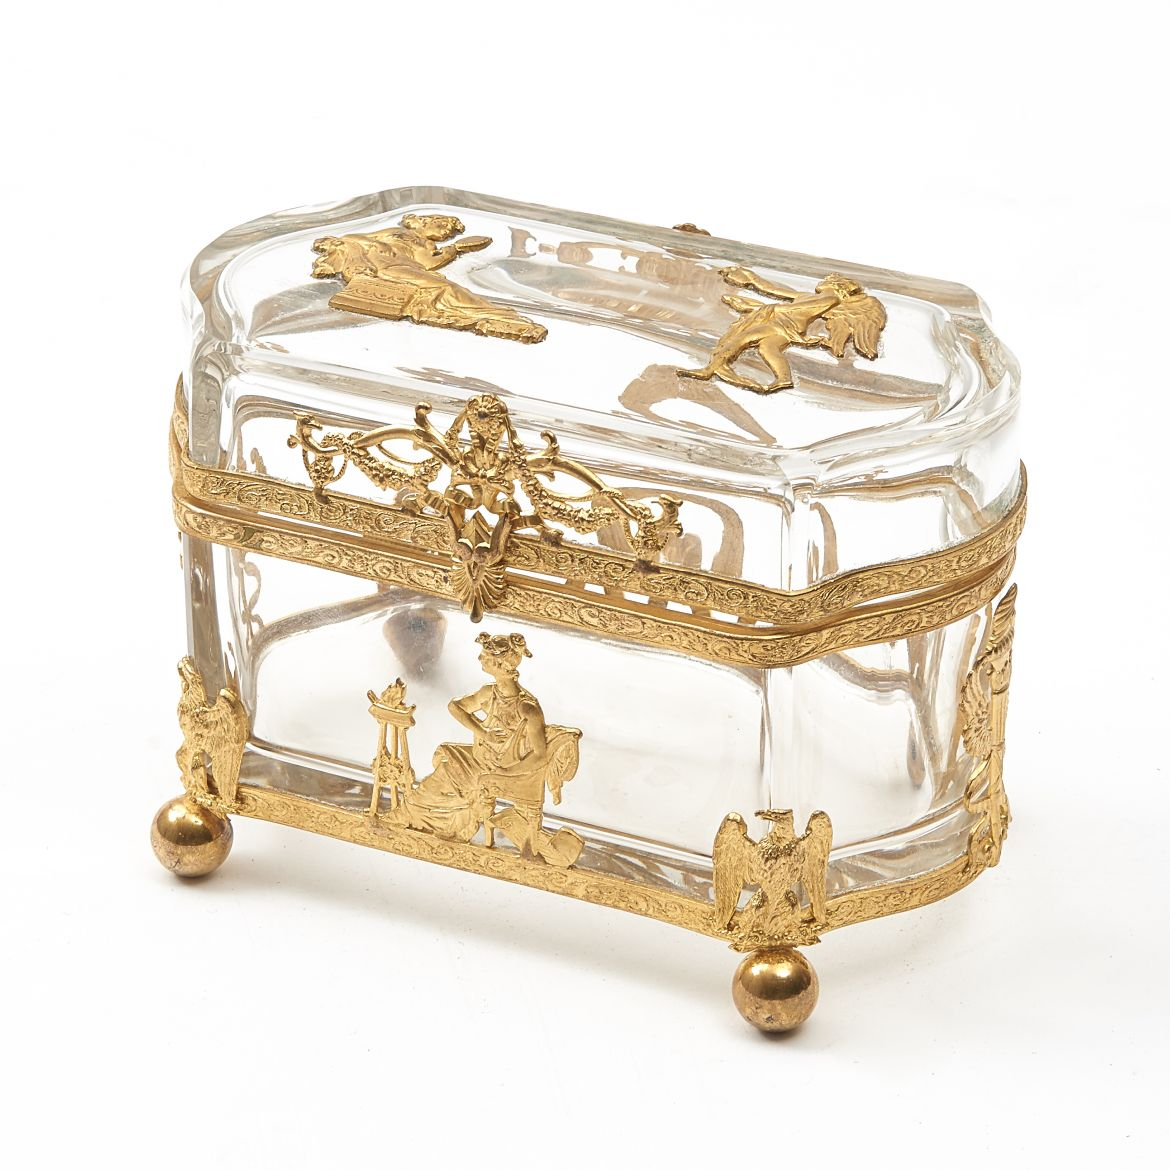 Glass Casket with Neo Classical Motifs